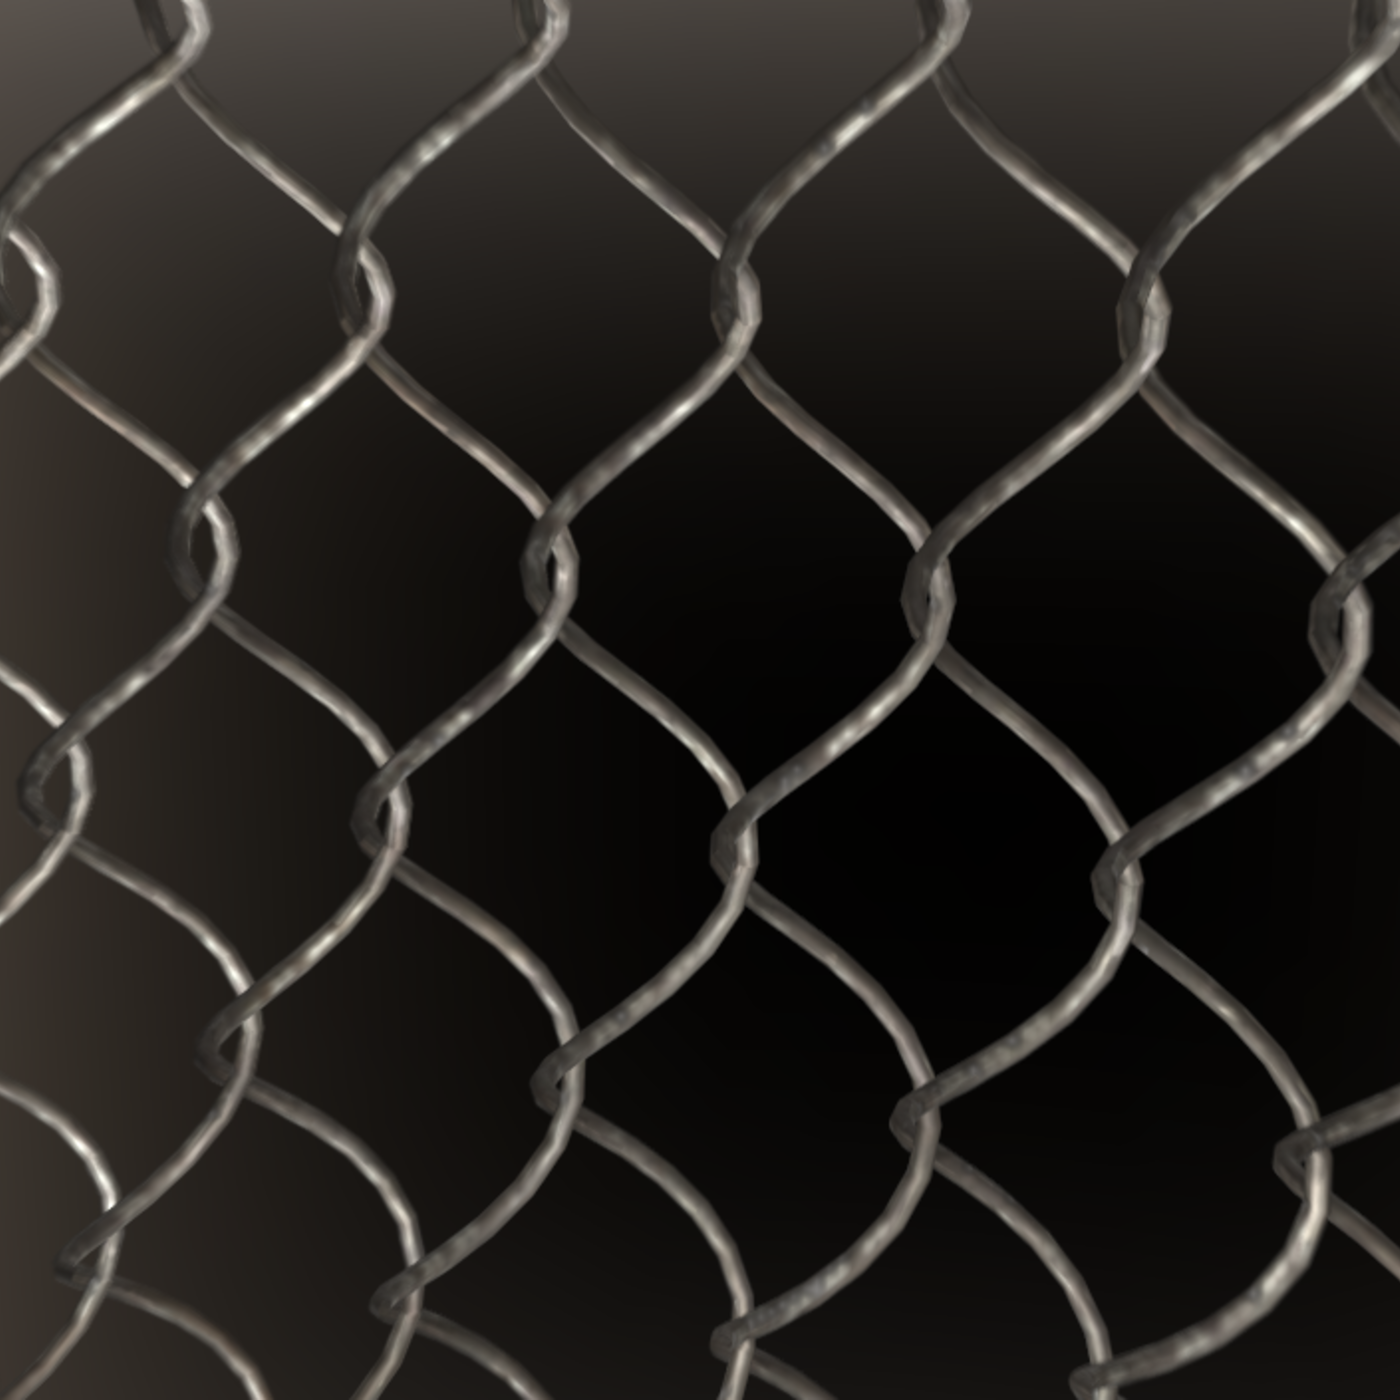 Barbed Fence PBR